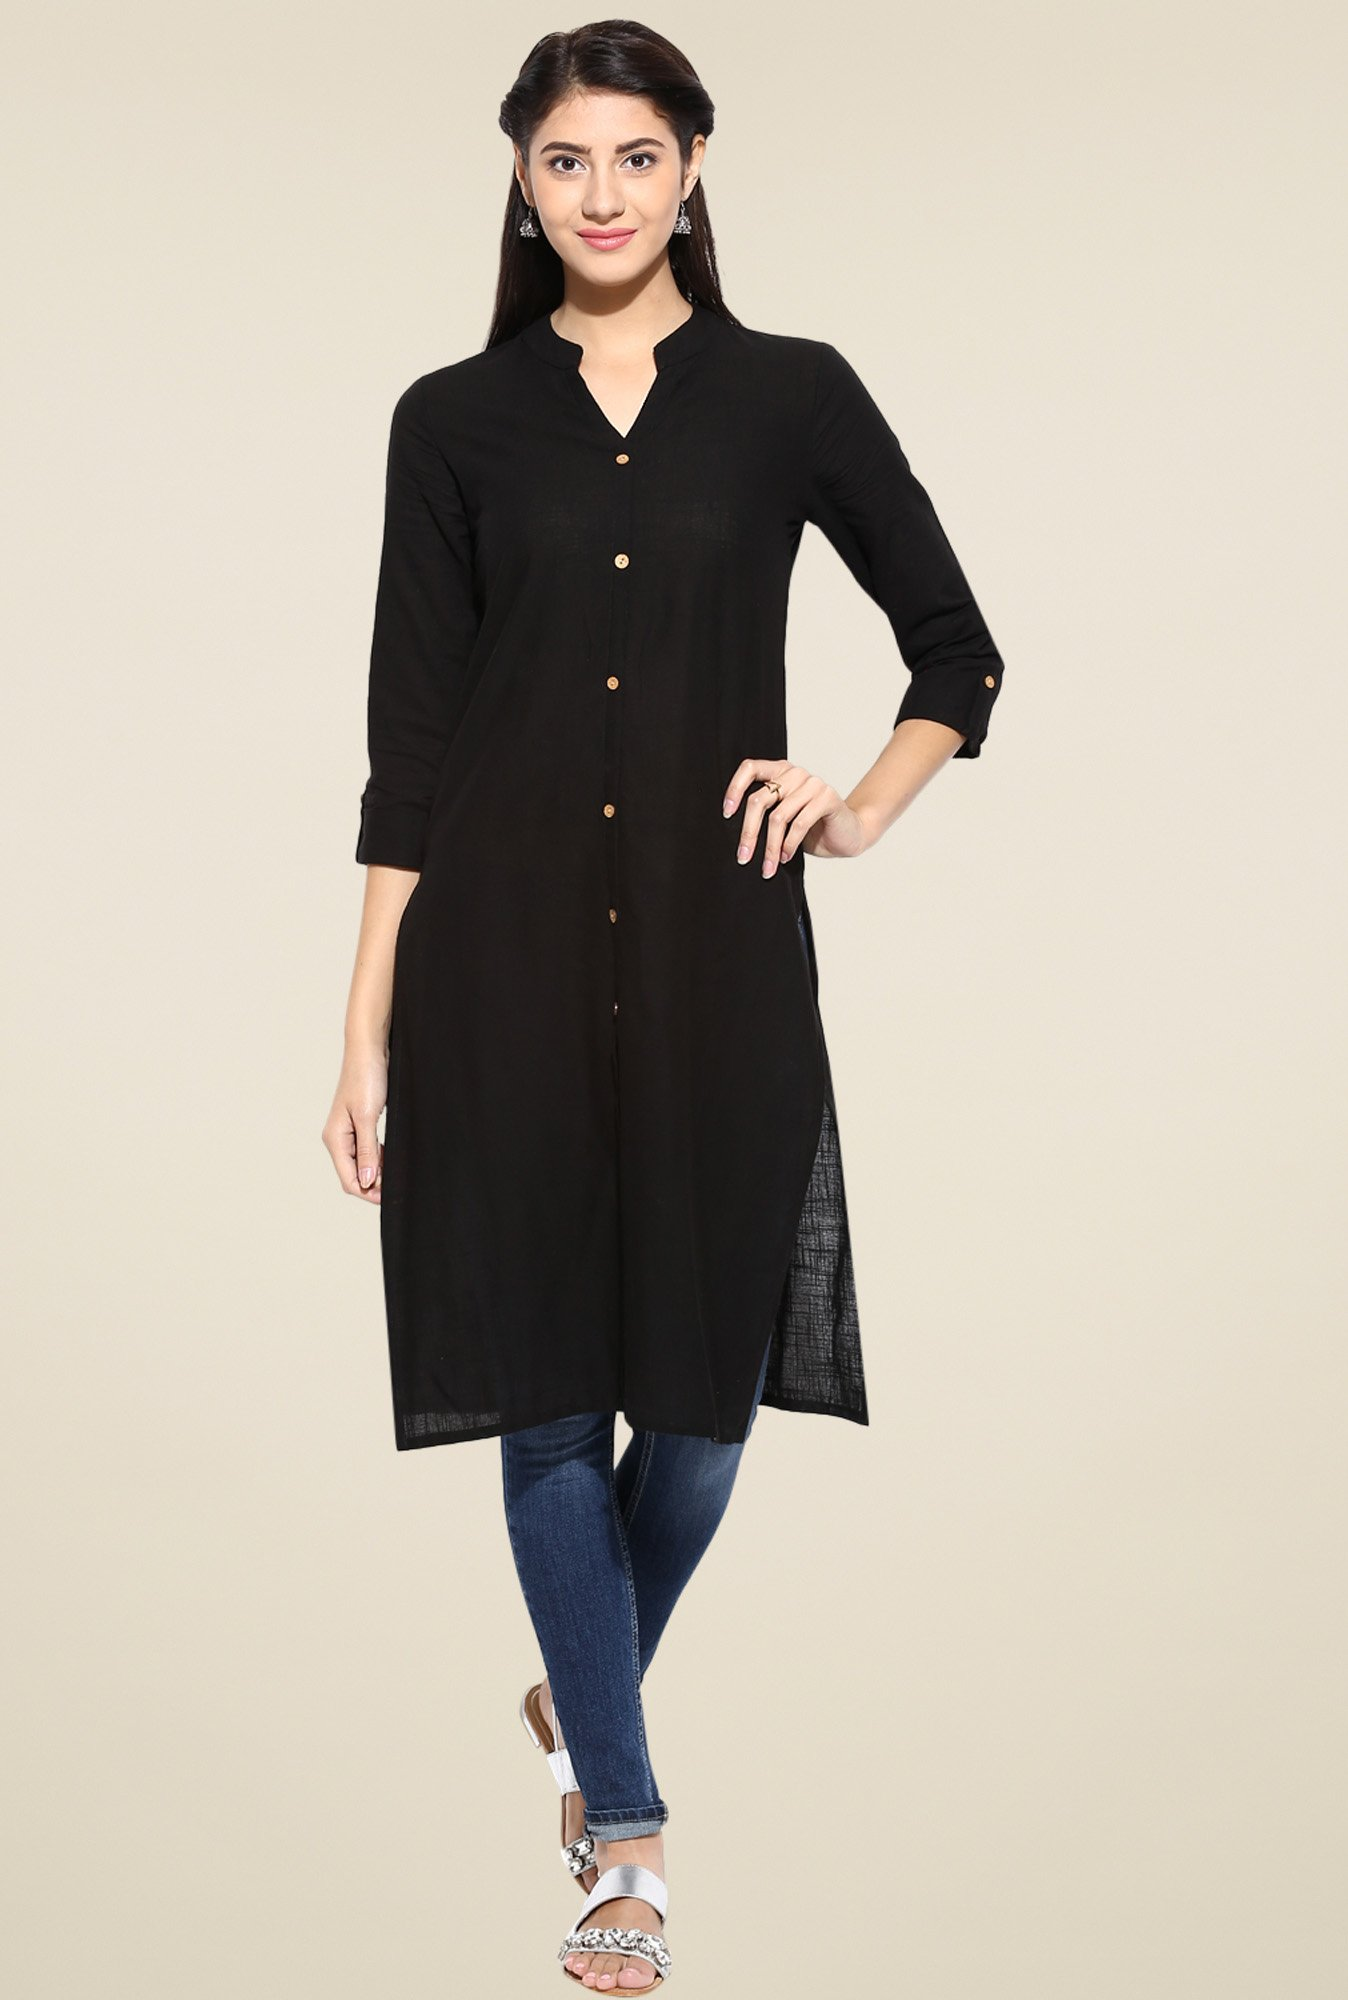 Evam Black Solid Cotton Long Kurta